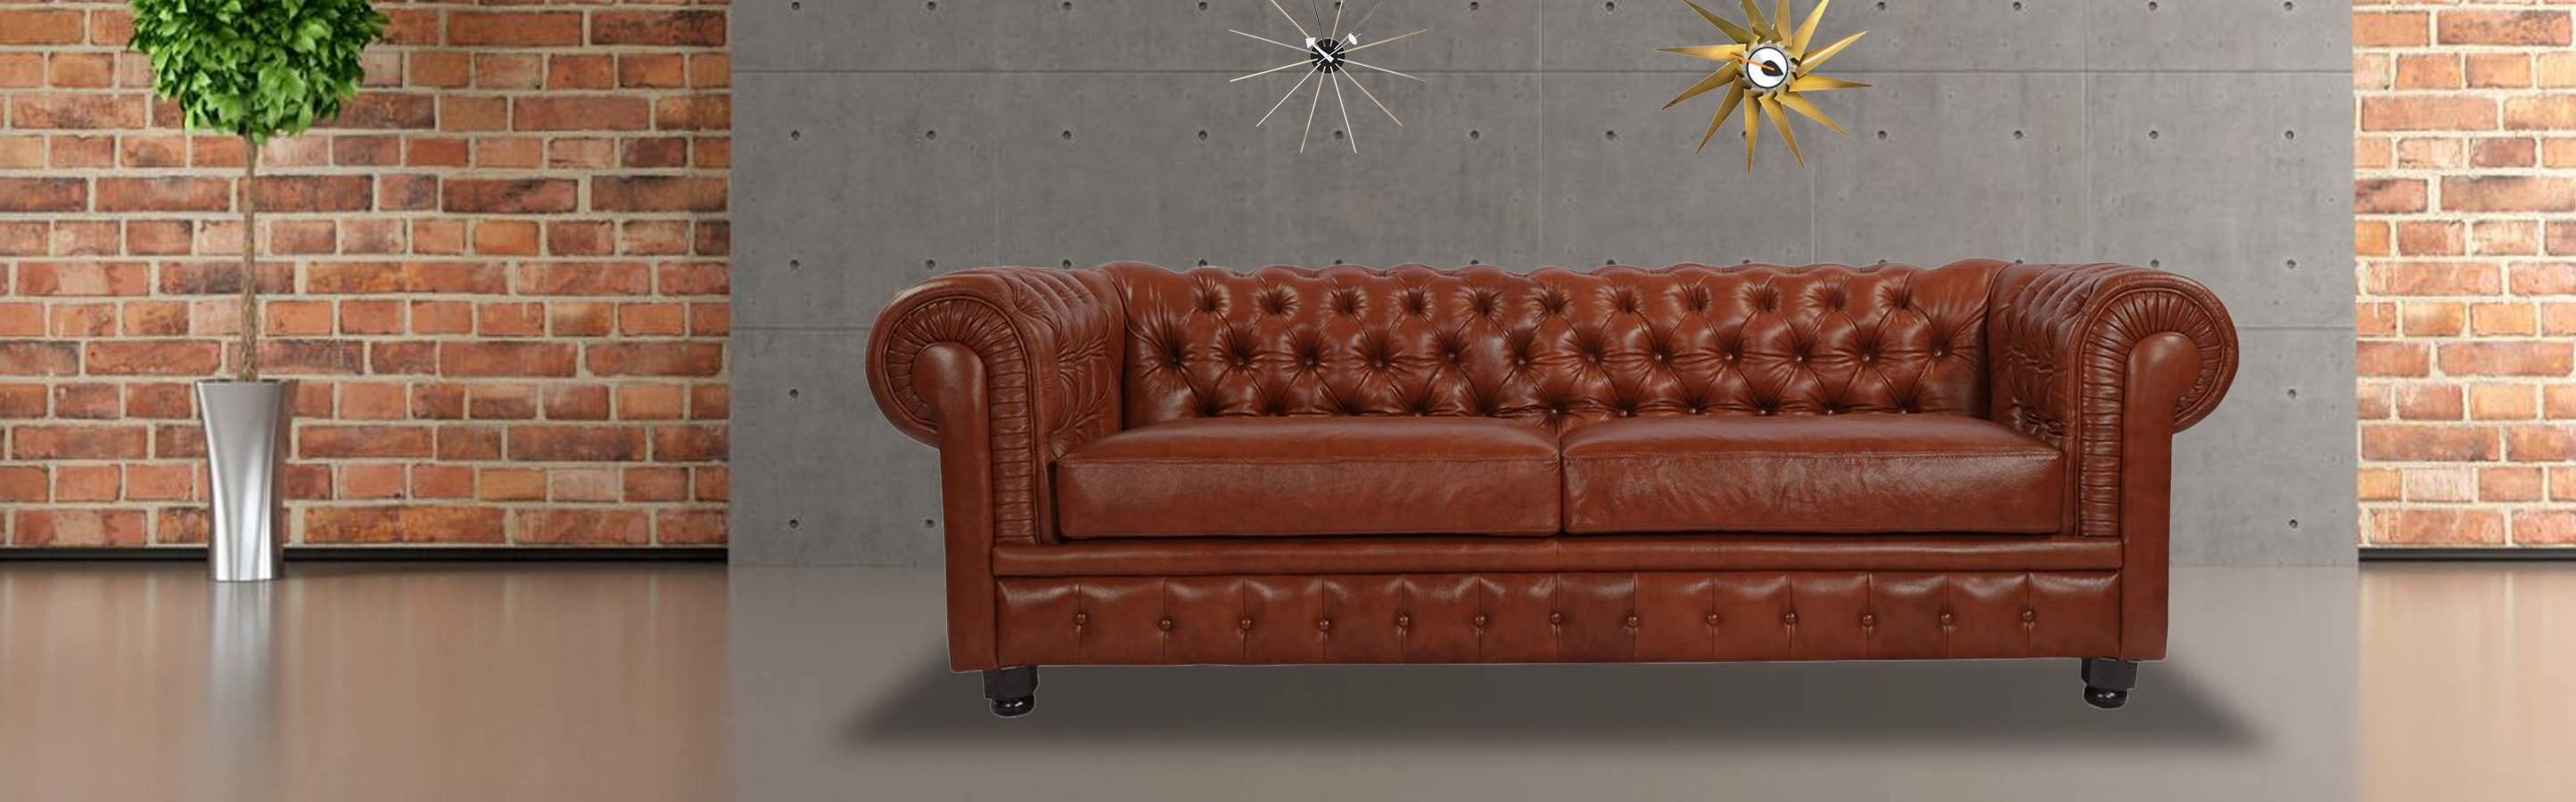 Chesterfield Sofa Bordeaux Premium Leather Kardiel Intended For Chesterfield Sofa And Chair (Image 7 of 15)